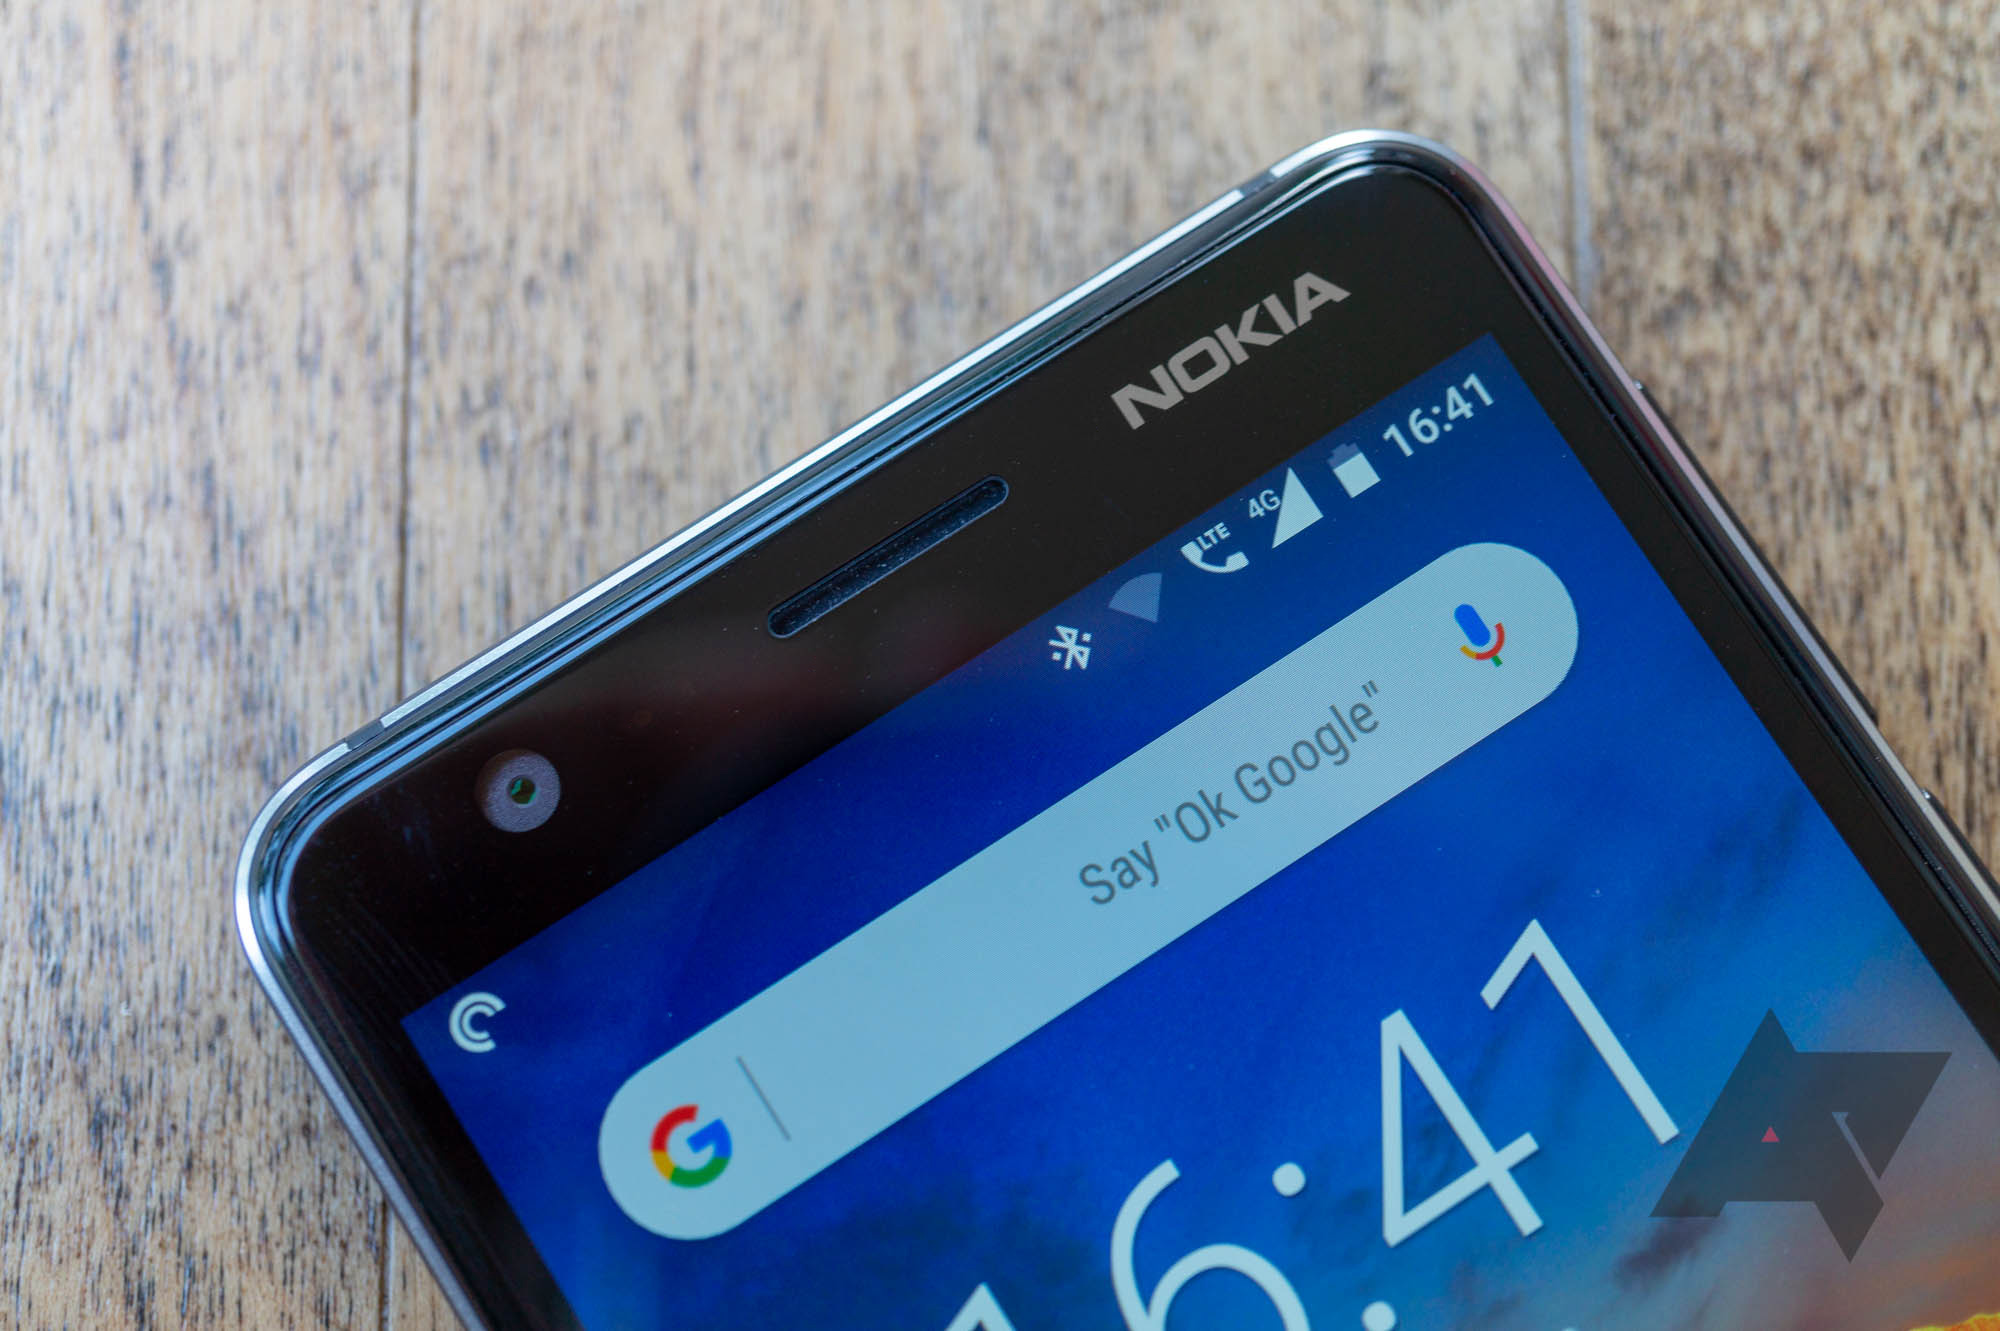 Nokia 3 1 review: In a league of its own